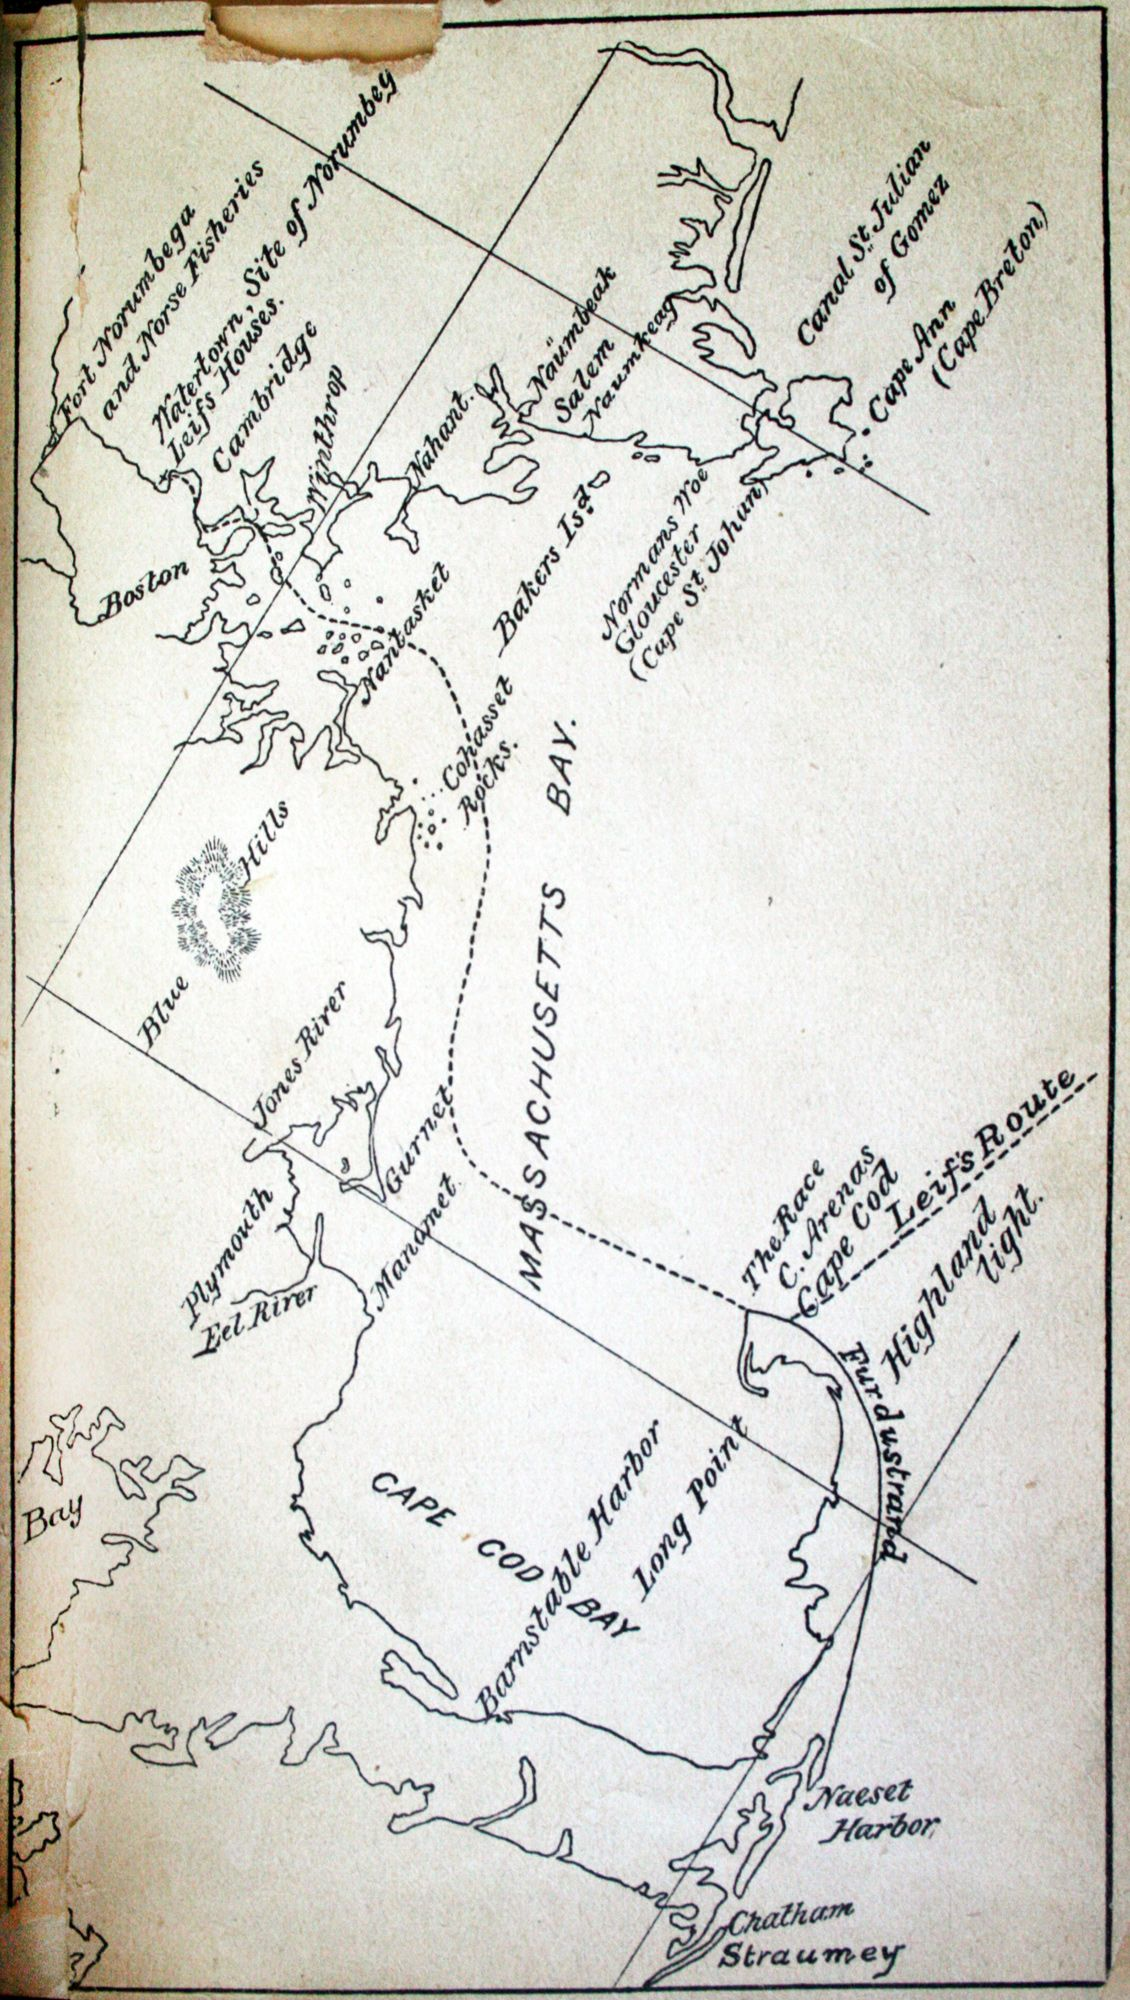 Leif Erikson S Route Into Massachusetts According To